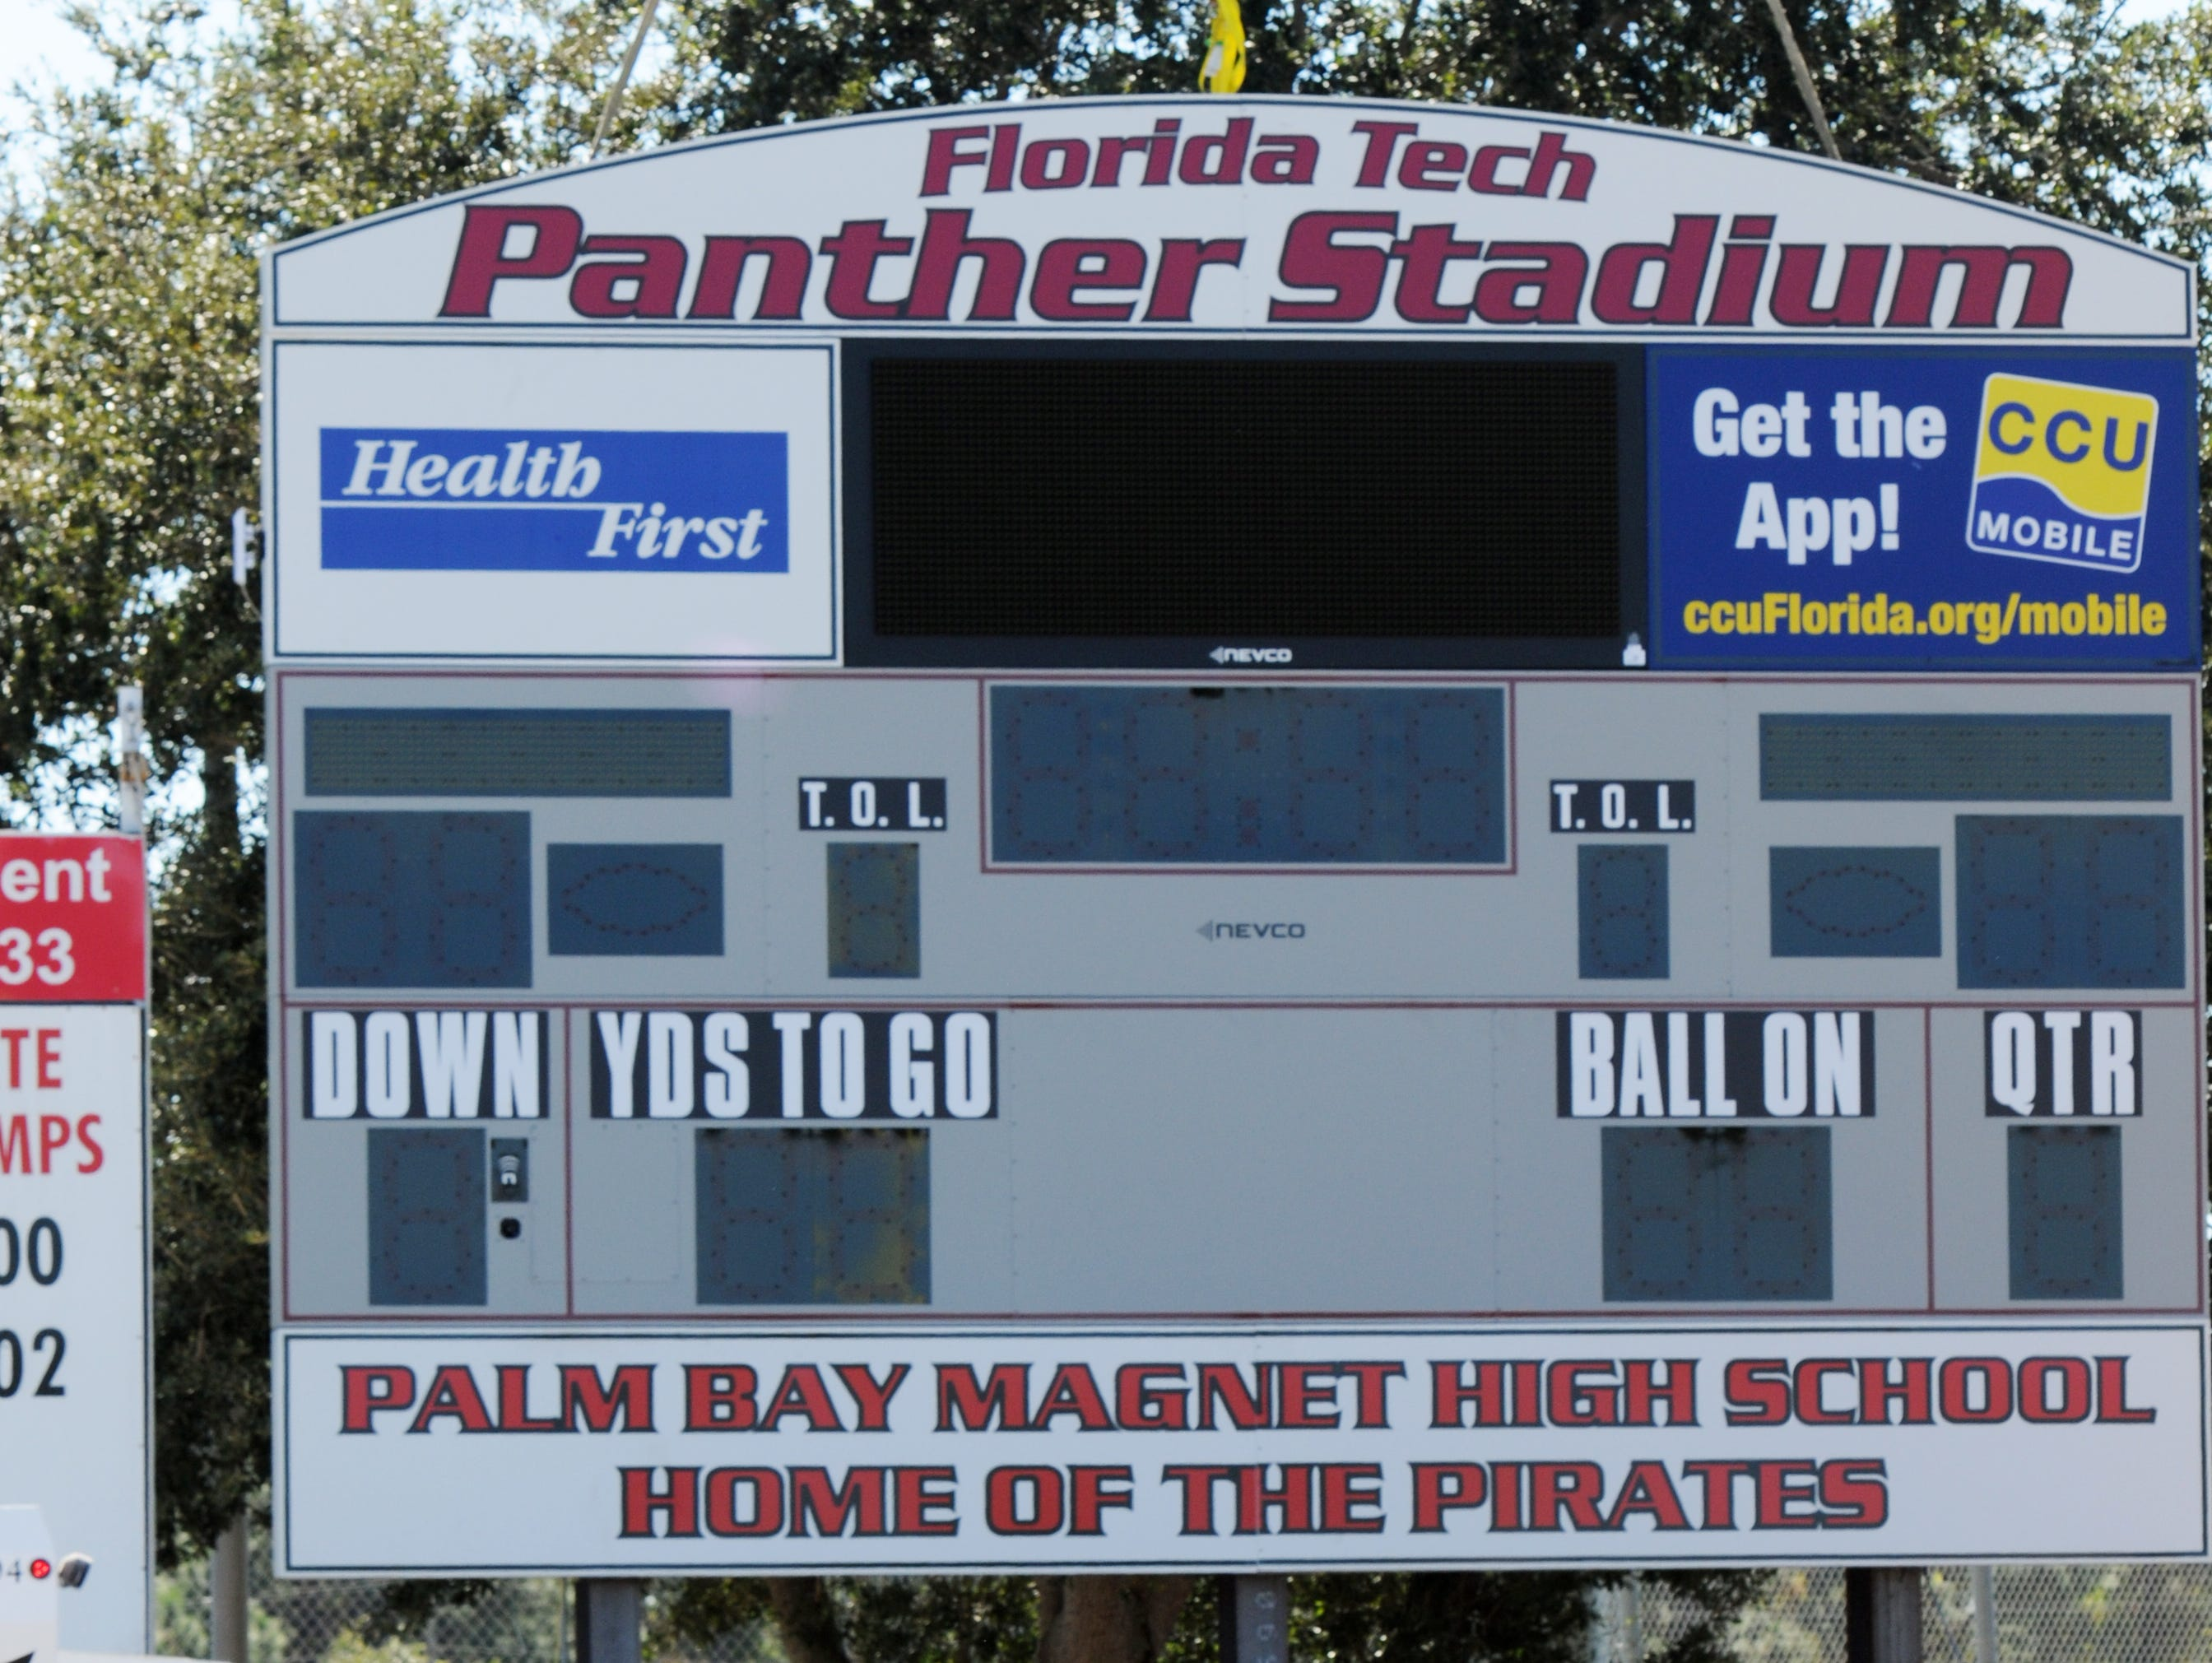 Officials from Florida Tech and Palm Bay High School watch as workers install the new scoreboard sign at Panther Stadium in Melbourne Friday.